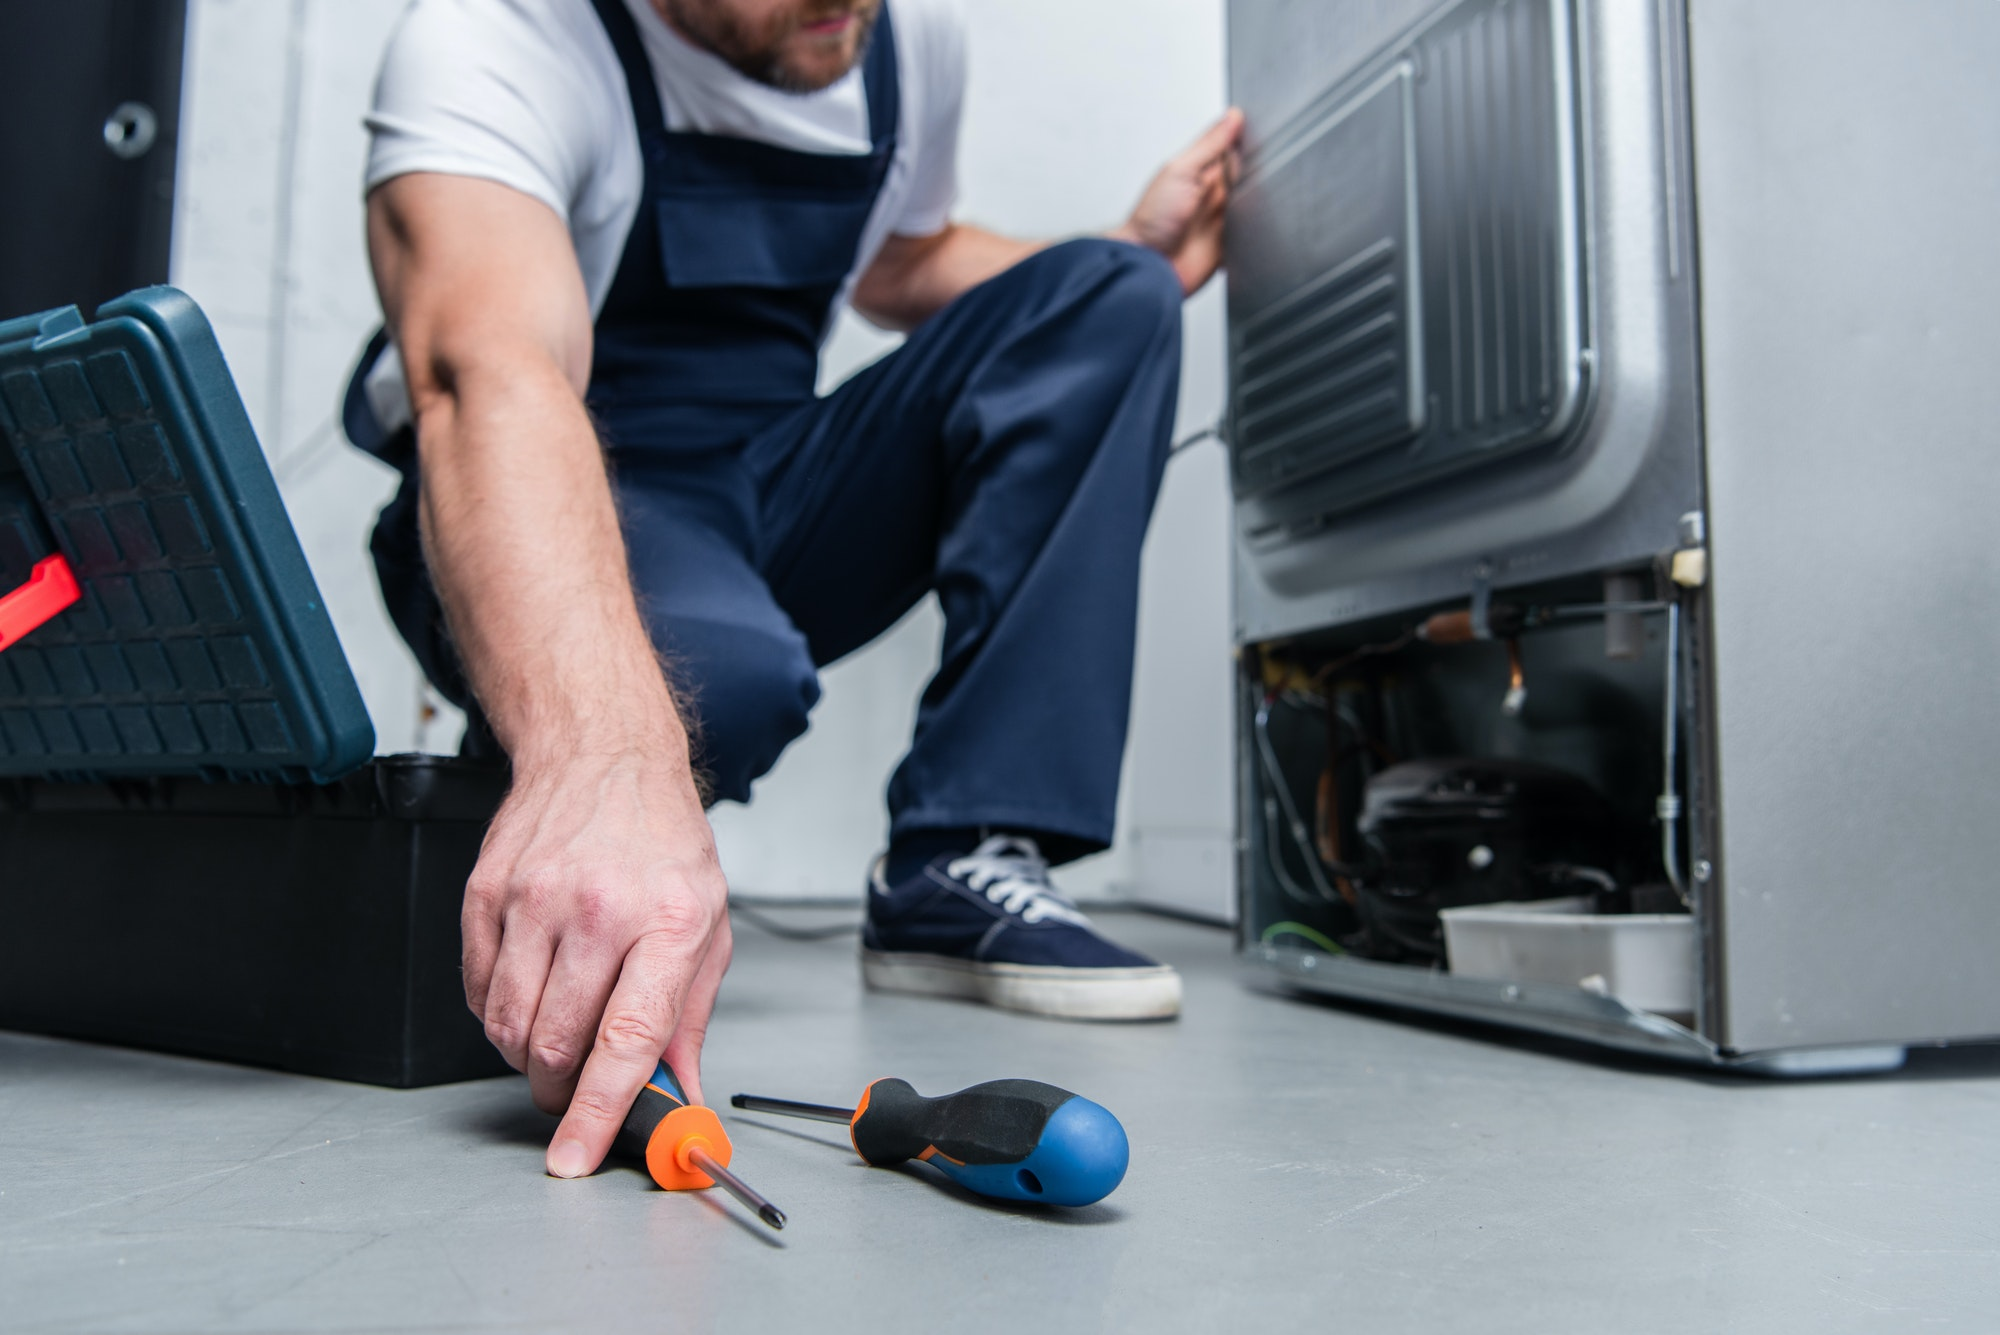 cropped shot of repairman in working overall taking screwdriver from floor near broken refrigerator